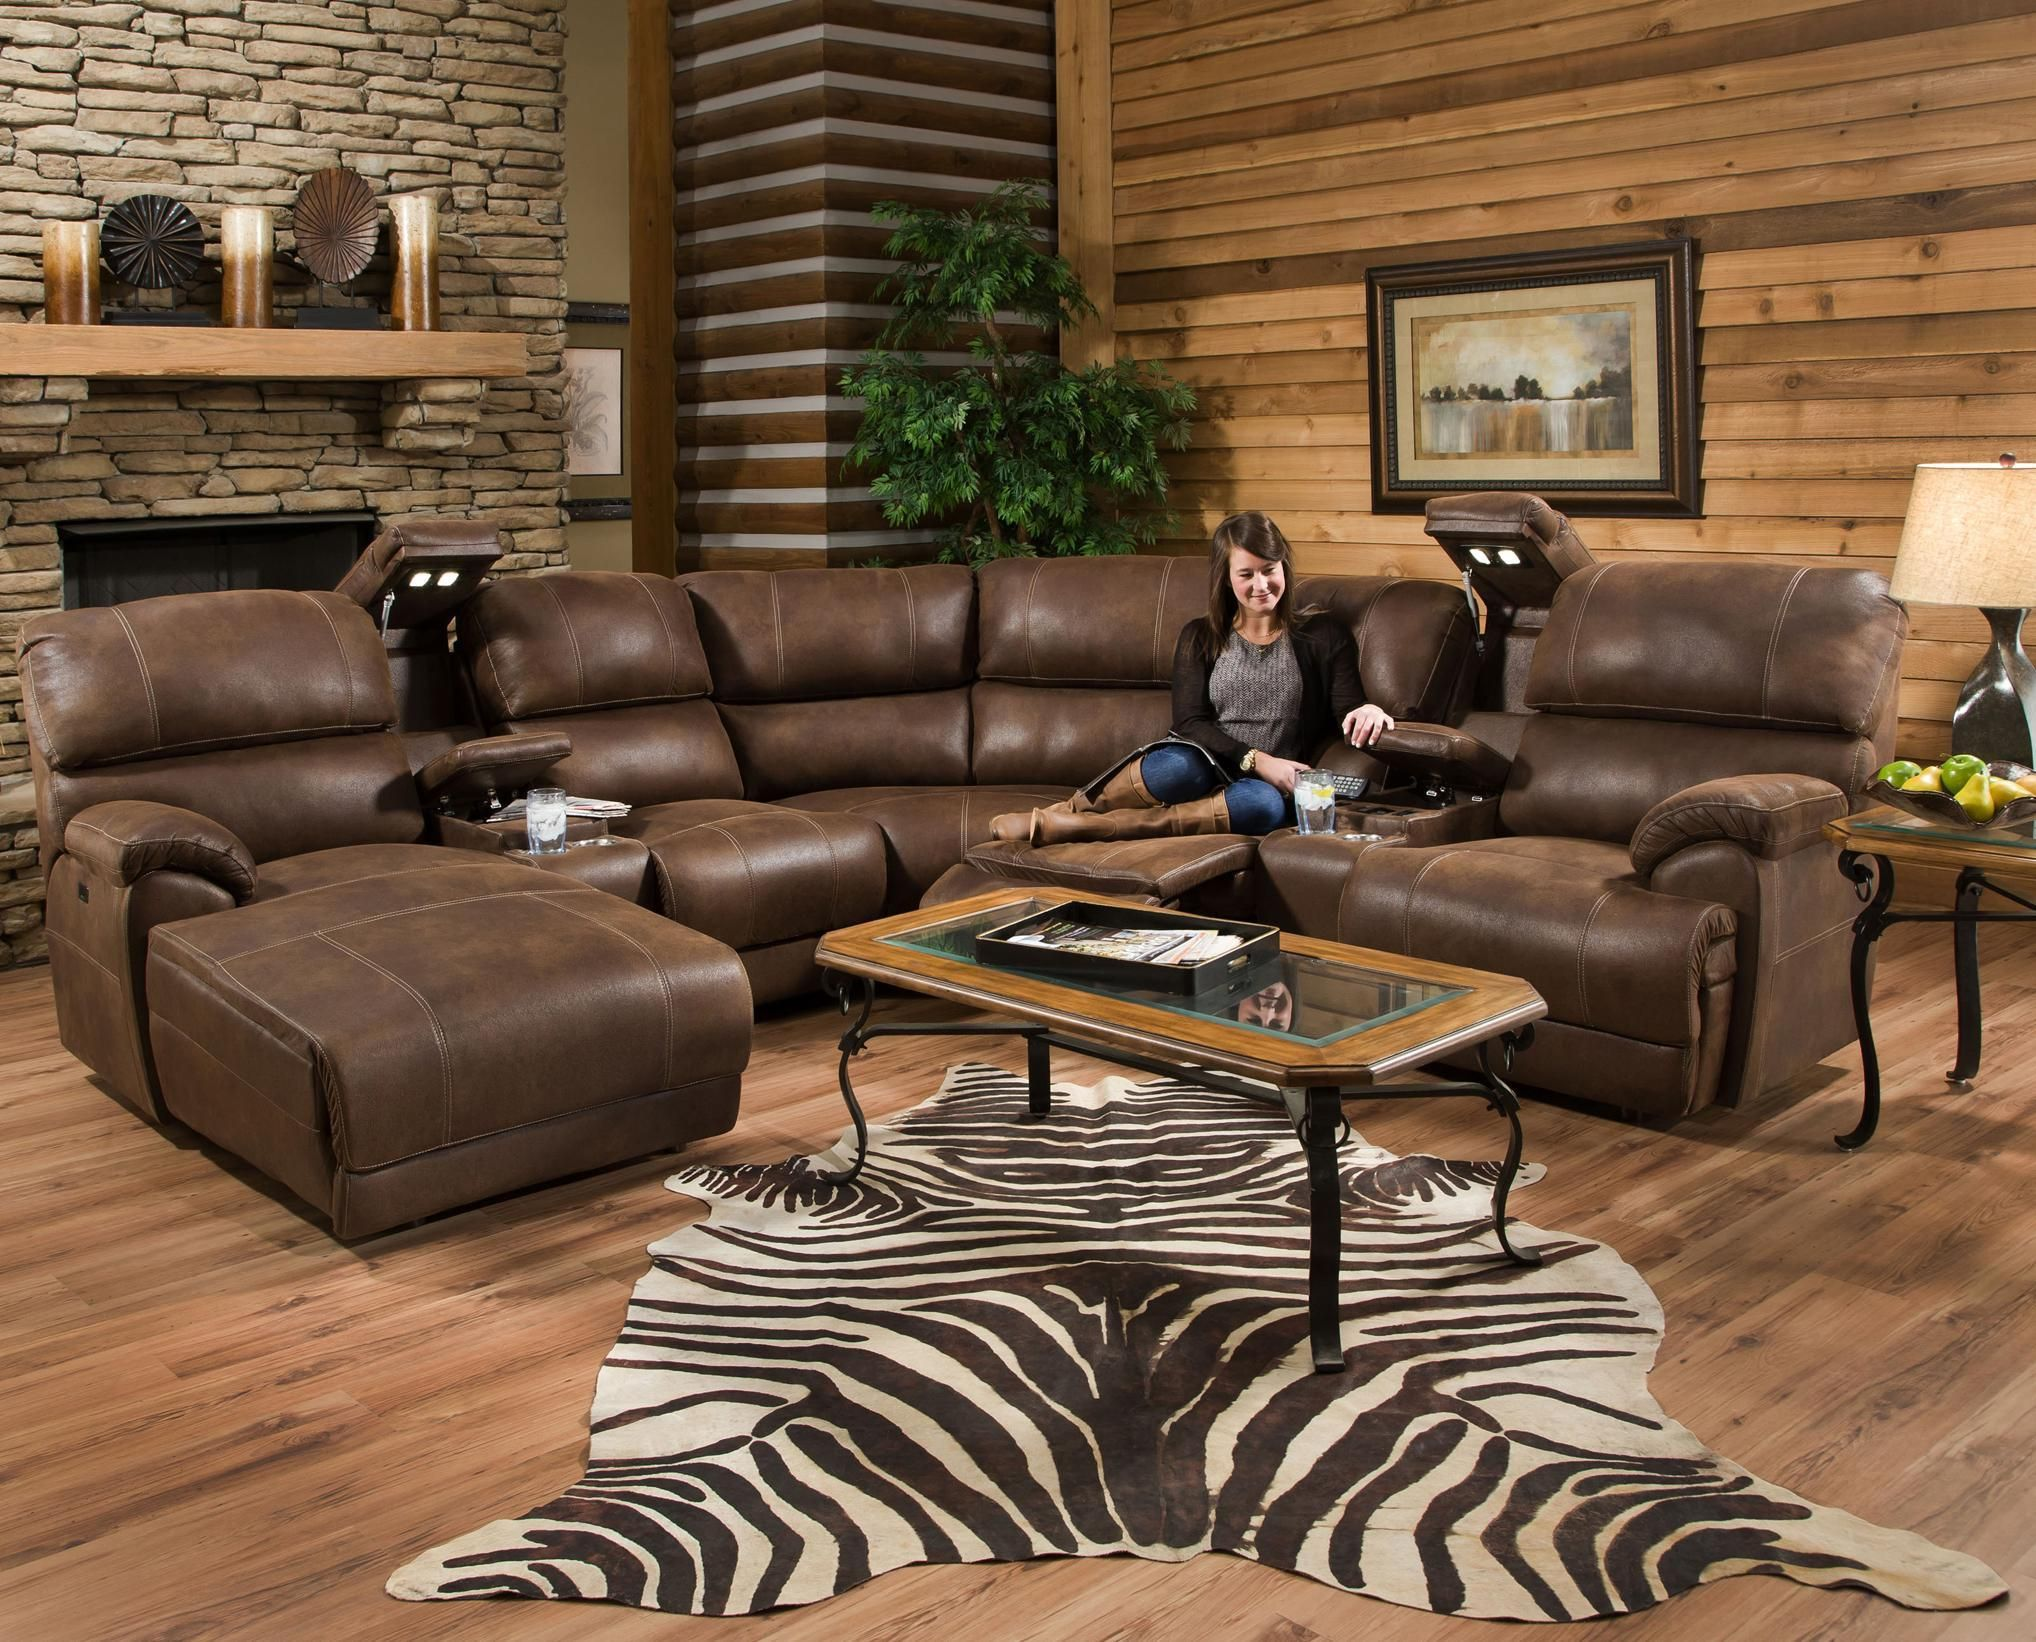 Homelegance Hankins Plush Chocolate Reclining Sectional Sofa